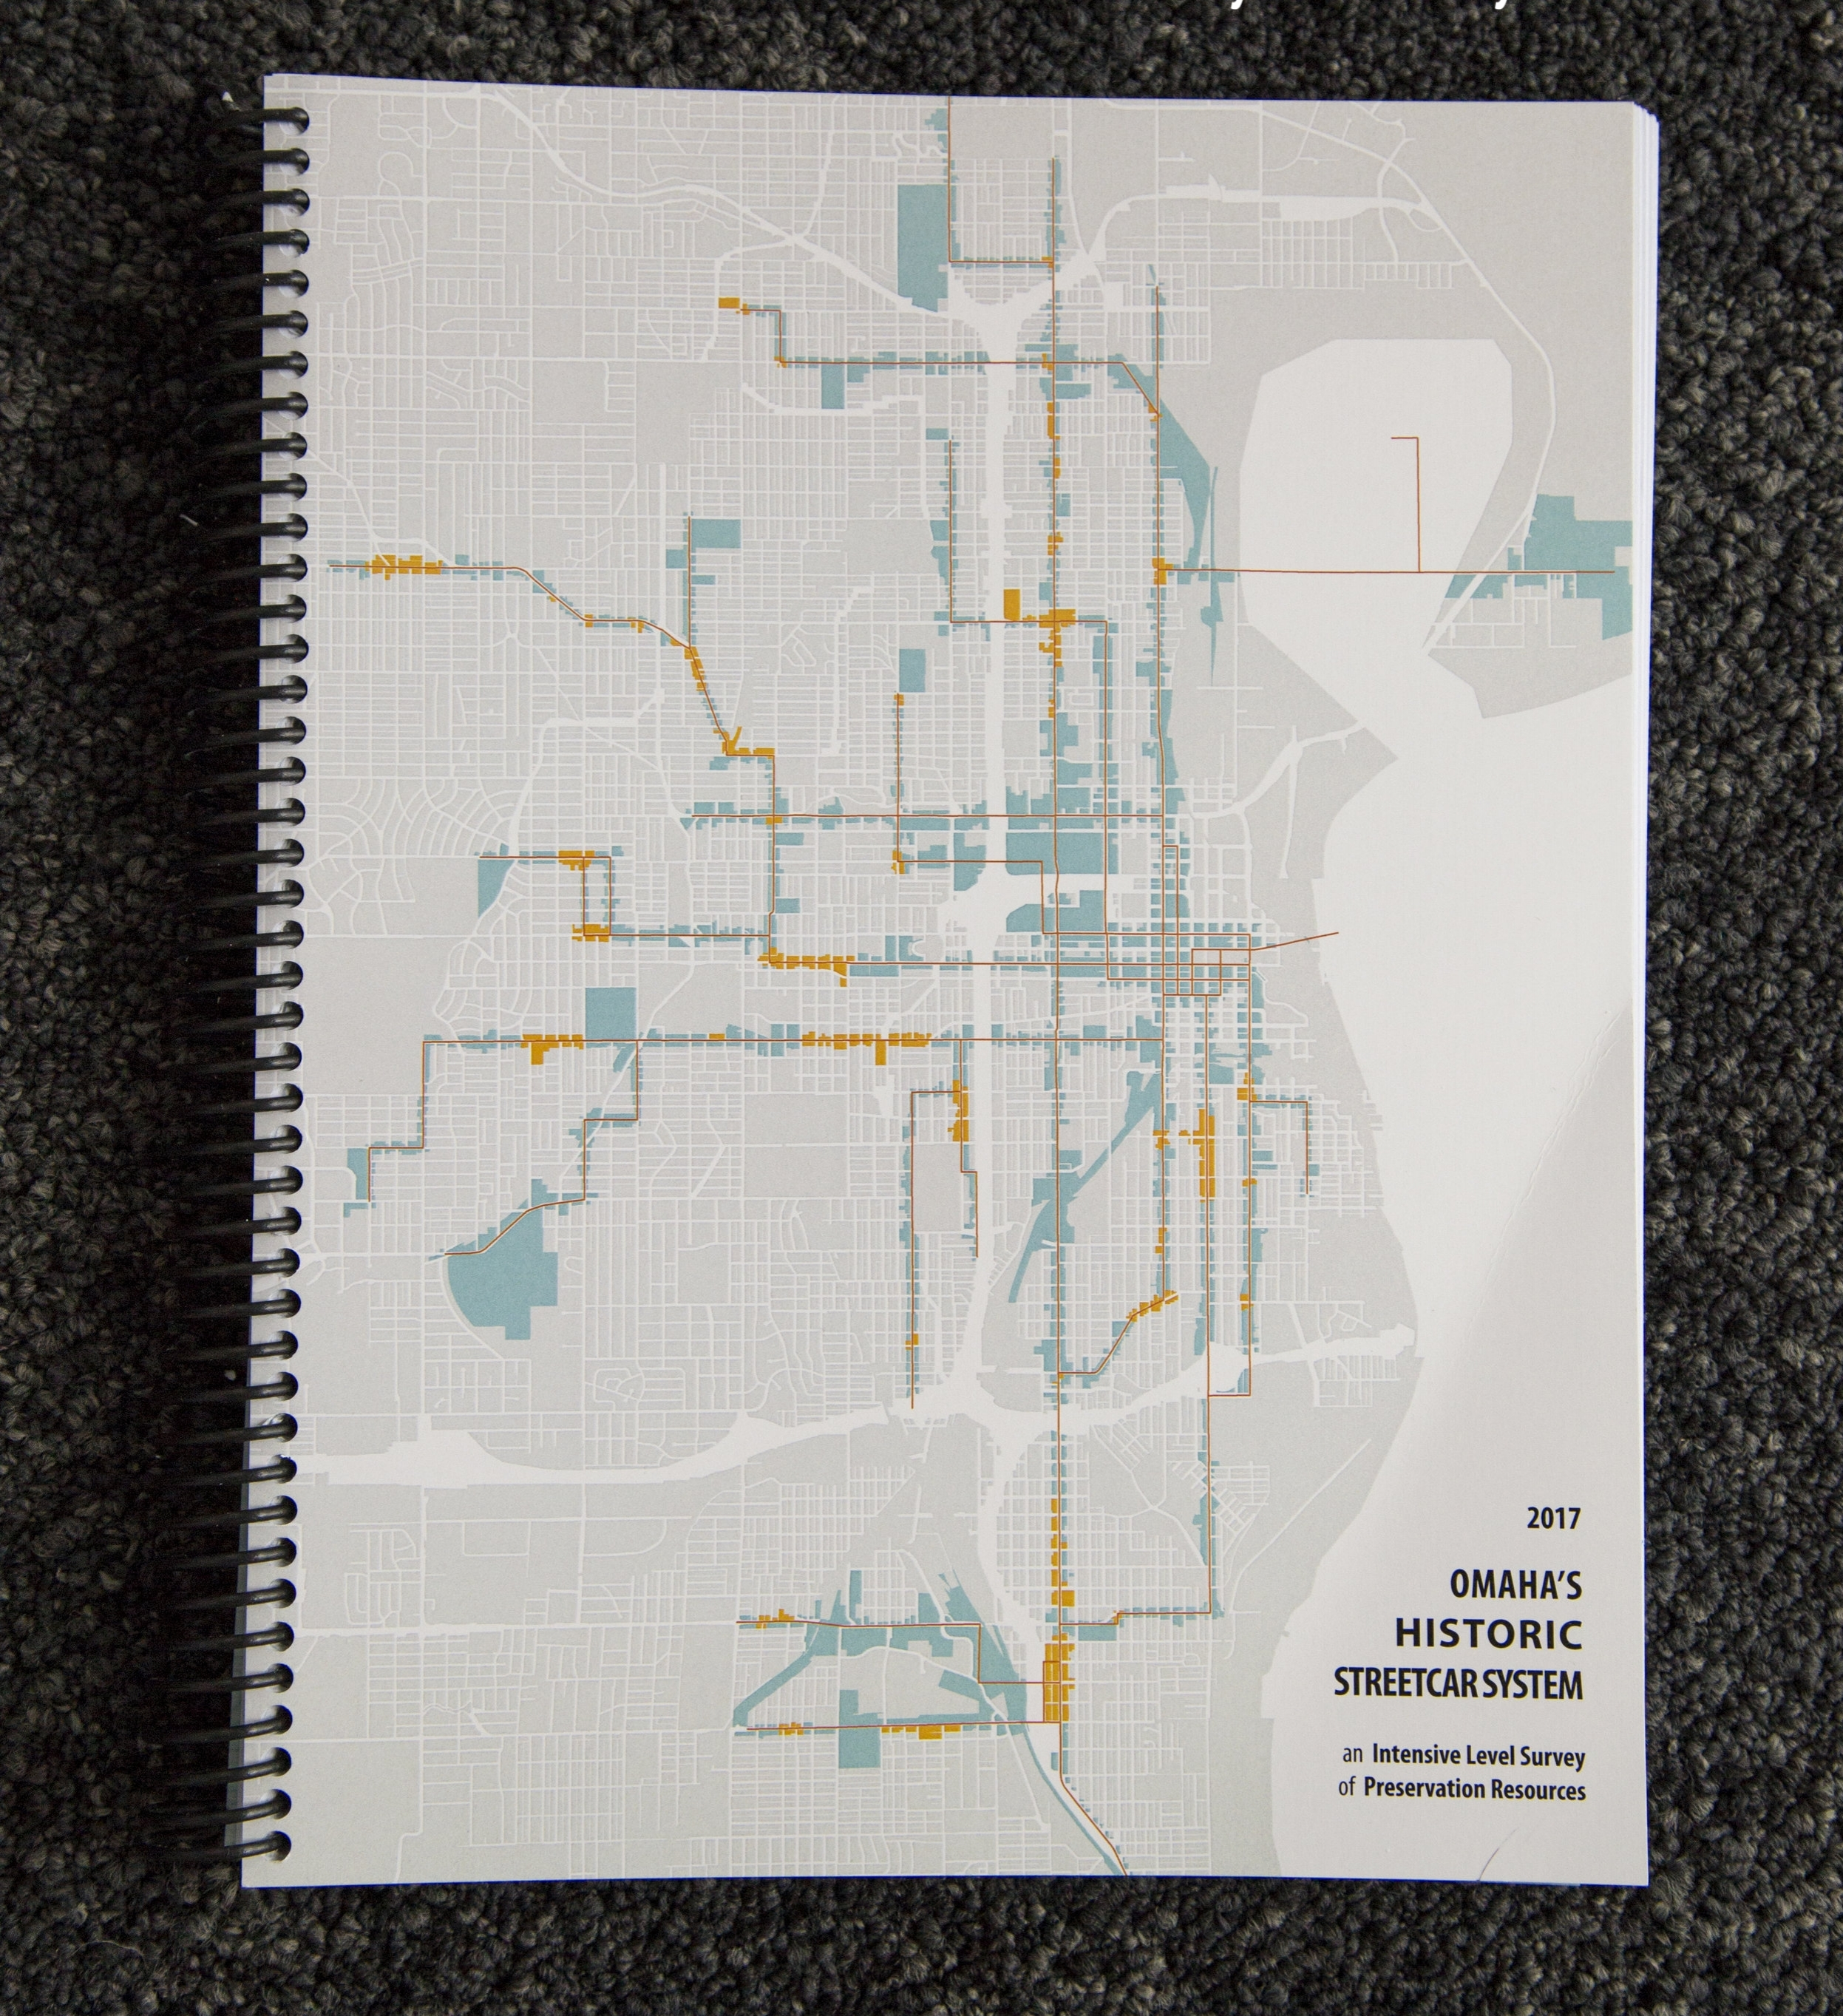 2017 Omaha's Historic Streetcar System Intensive Level Survey book